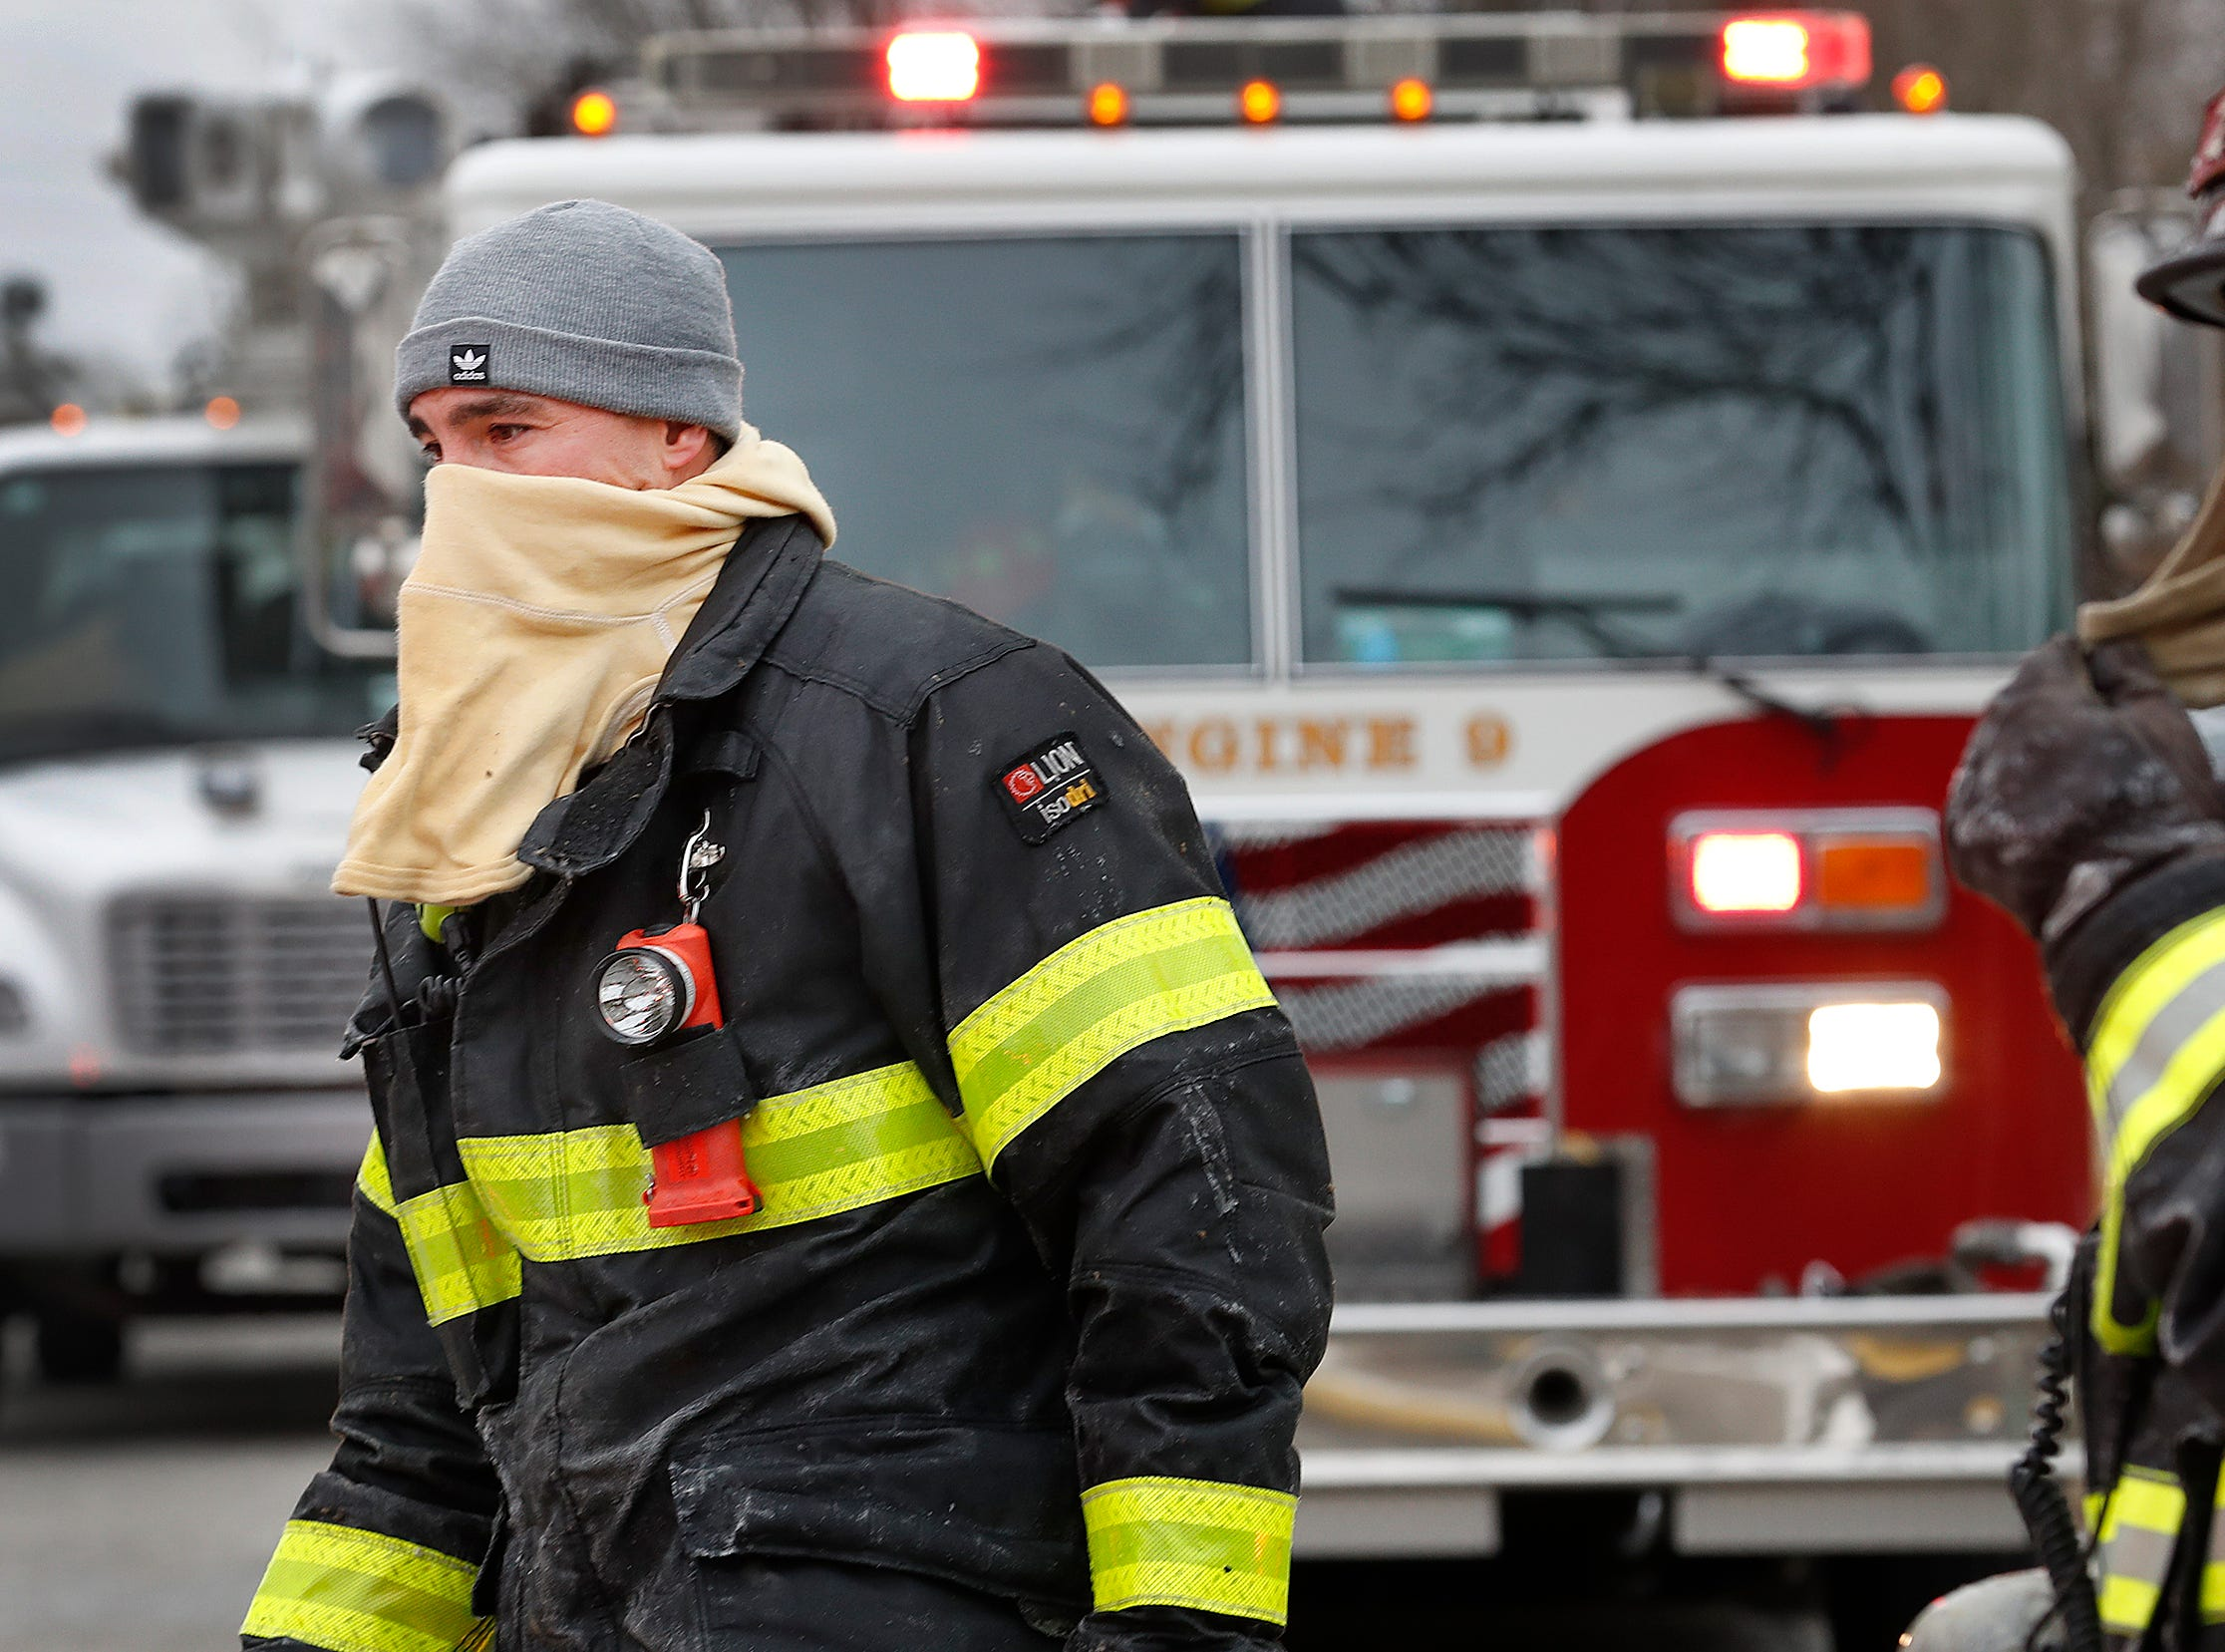 Fire fighters from Indianapolis and Fishers battled a house fire at the corner of Castle Farms Rd. and Prairie Drive and then attempt to stay warm on Thursday, Jan. 30, 2019. No one was injured in the single home fire on the far Northeast side of Indianapolis.